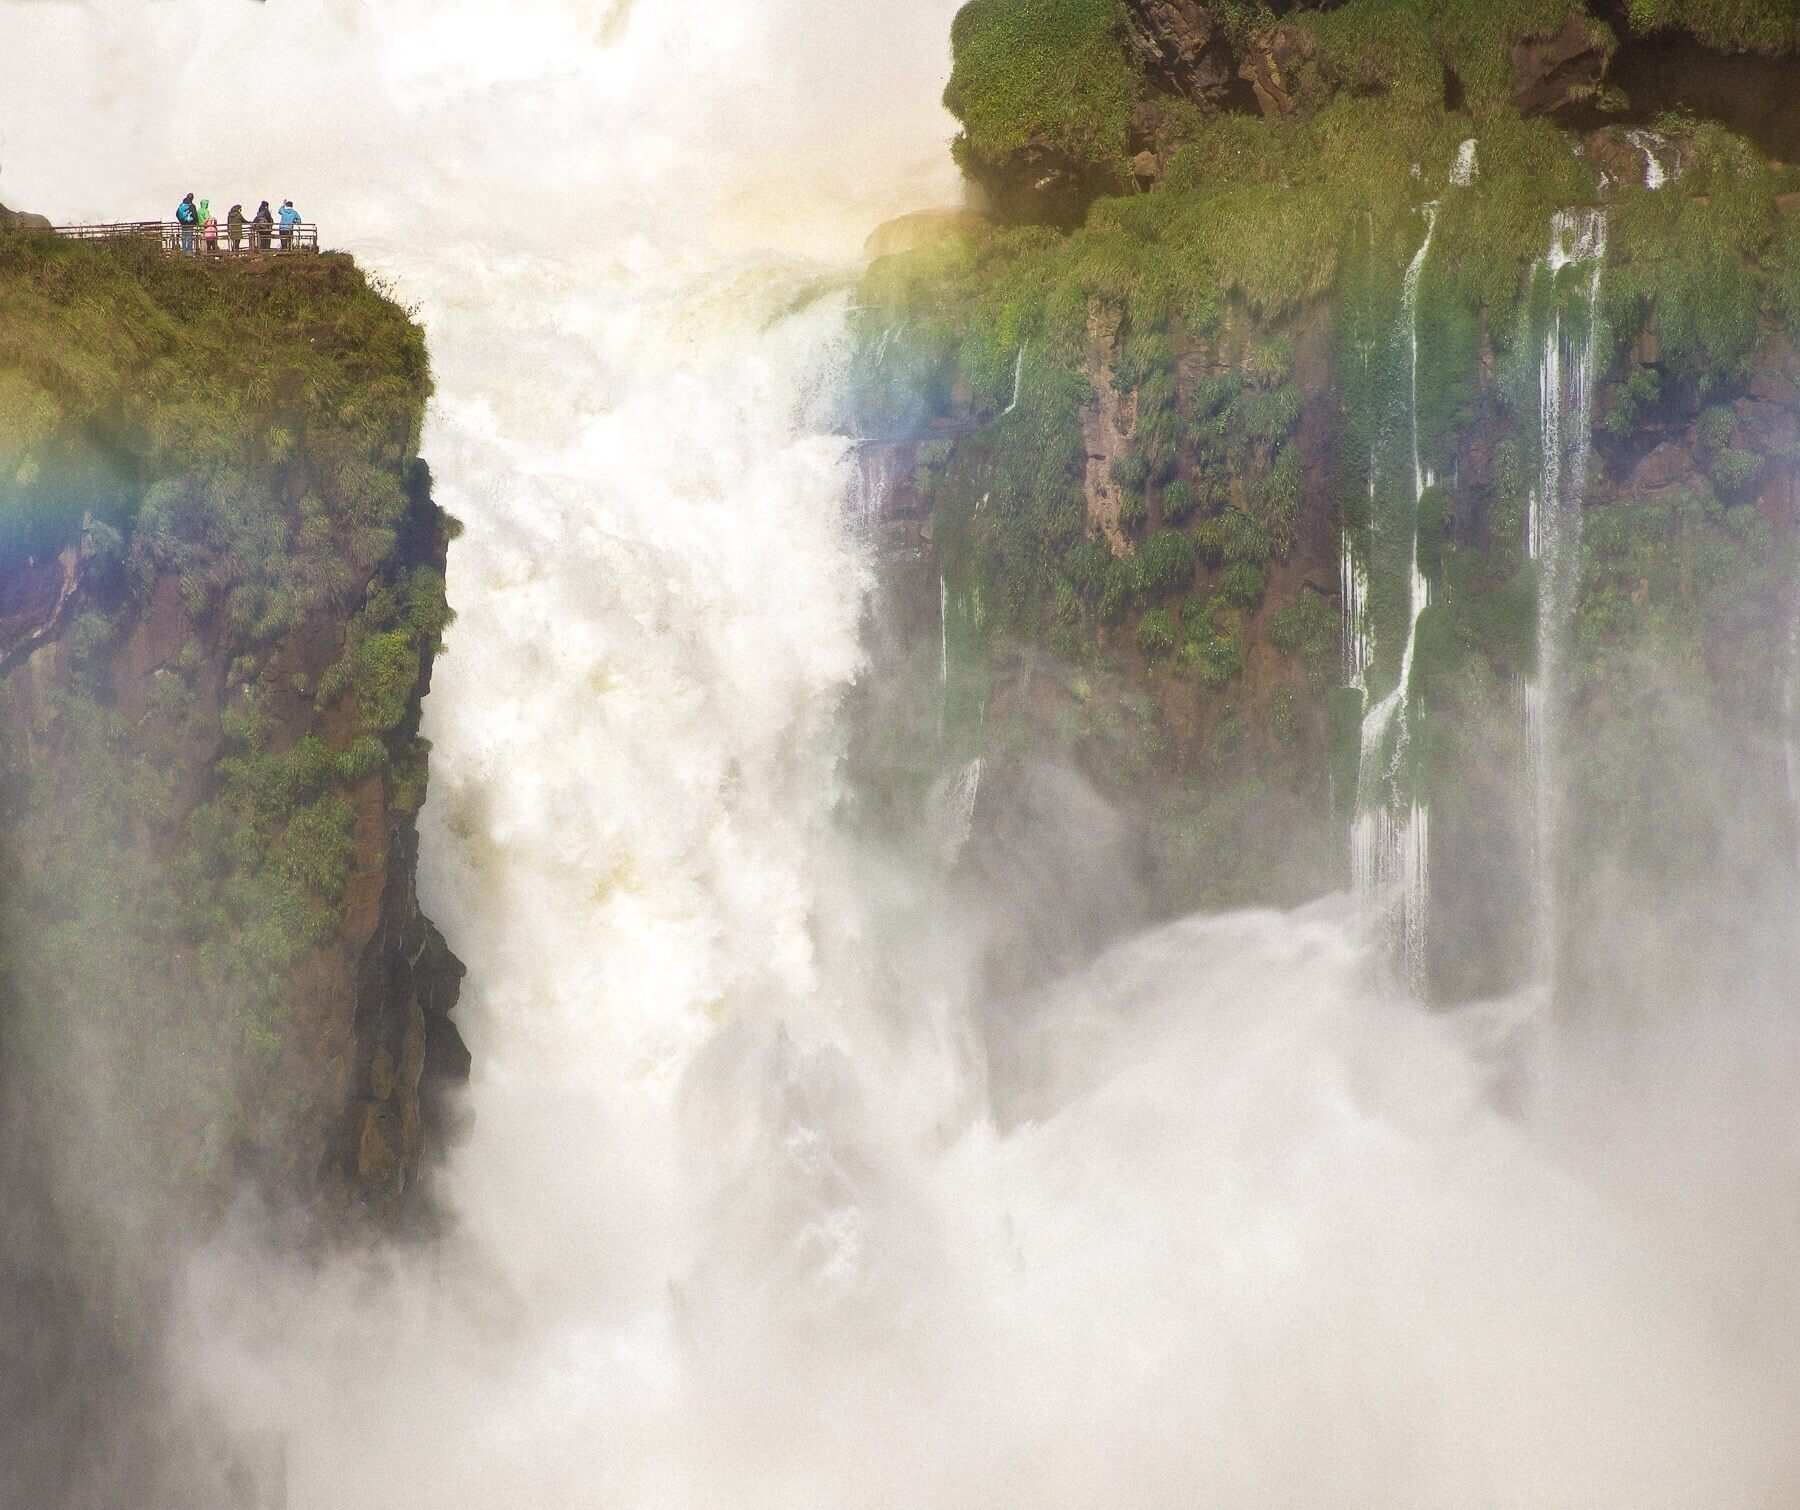 A ginormous waterfall with people in the top left hand corner showing the size